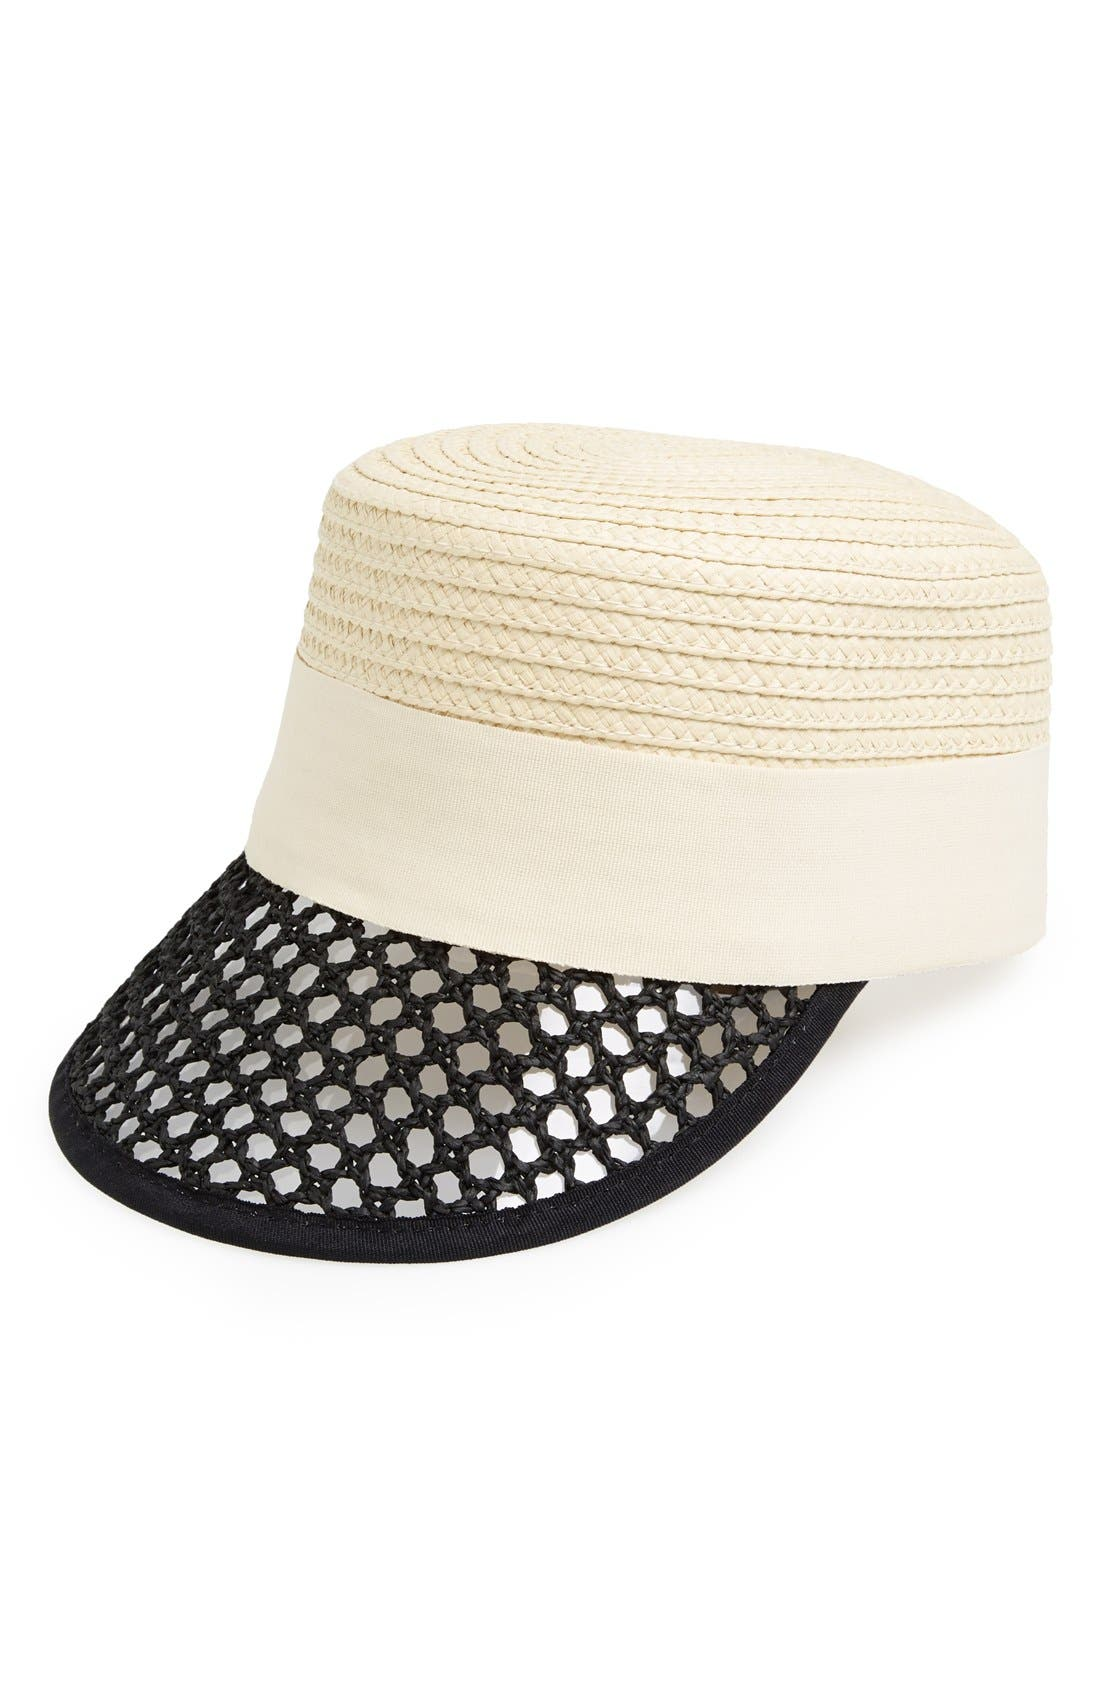 Alternate Image 1 Selected - August Hat Woven Cap